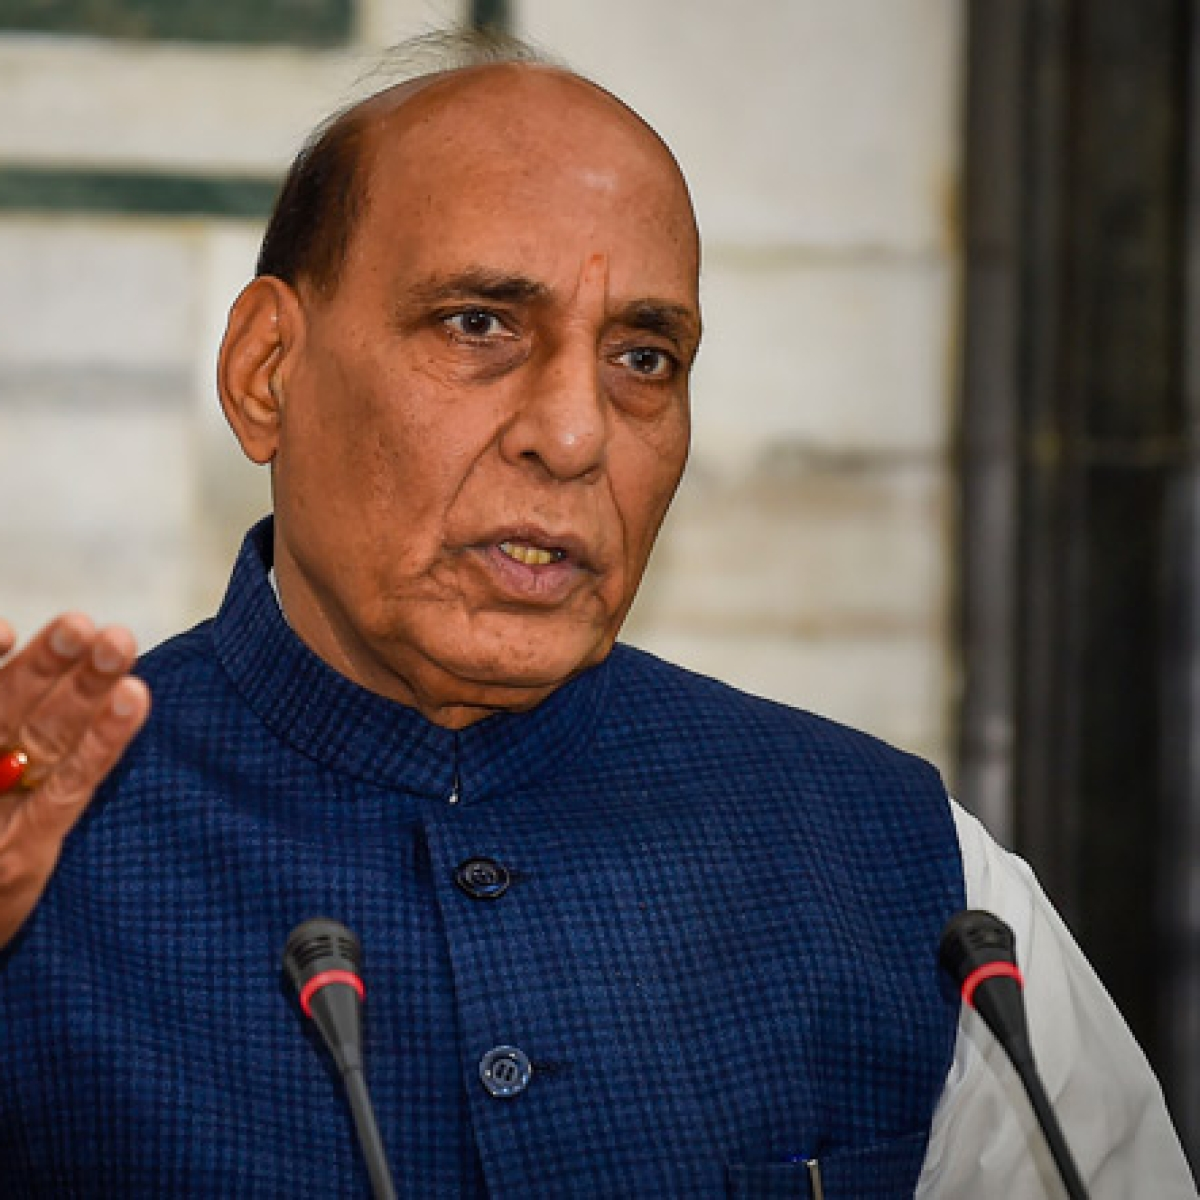 India wants peace, but will give 'befitting reply' to aggression: Defence Minister Rajnath Singh on border row with China